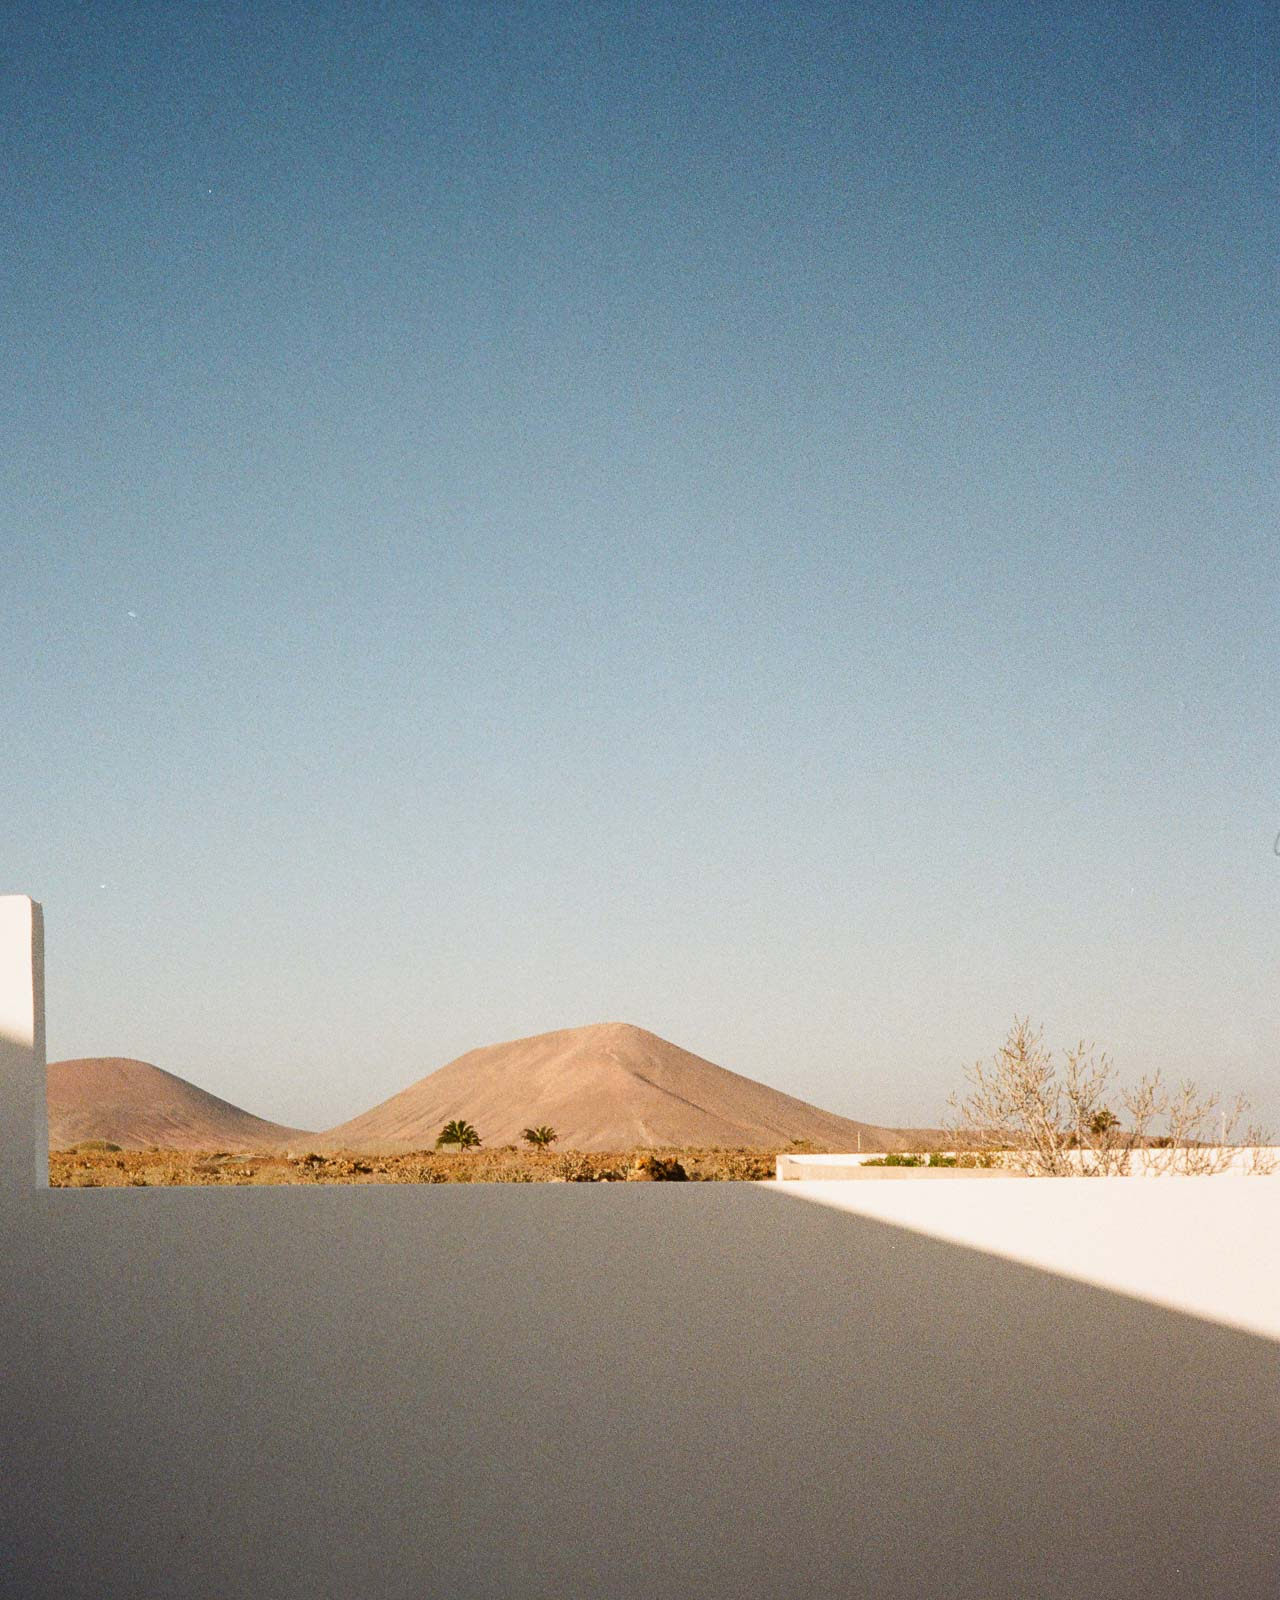 analog diary 2020 by storm wes shot with yasica t4 on Kodak gold film in Lanzarote